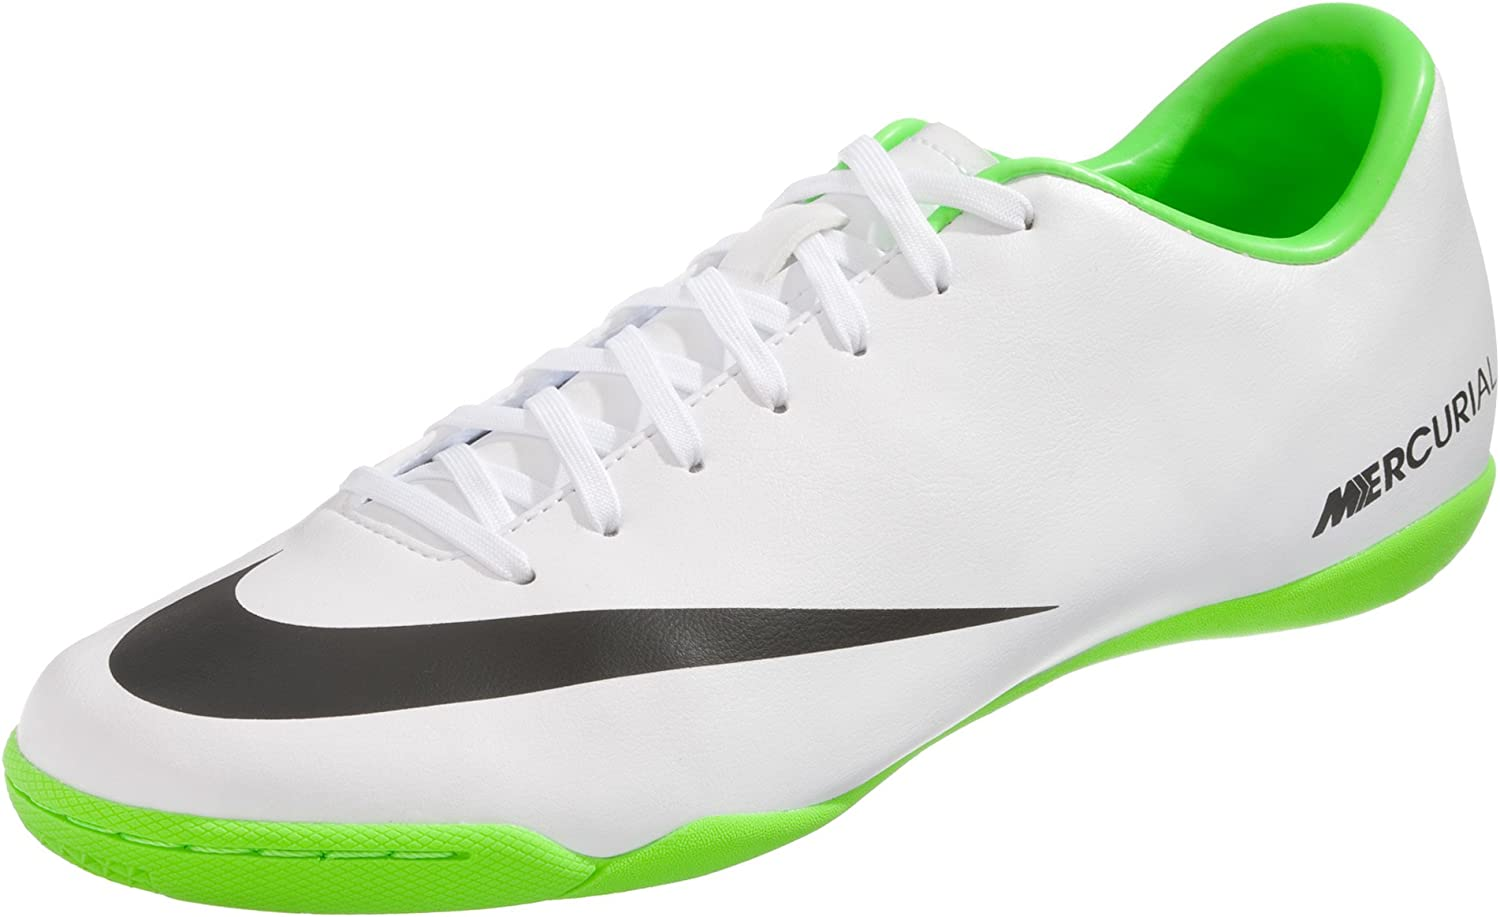 Nike Mercurial Victory IV IC – Zapatillas de Fútbol Sala Modelo 2014, Weiß (White/Black/Electric Green), 10.5: Amazon.es: Deportes y aire libre